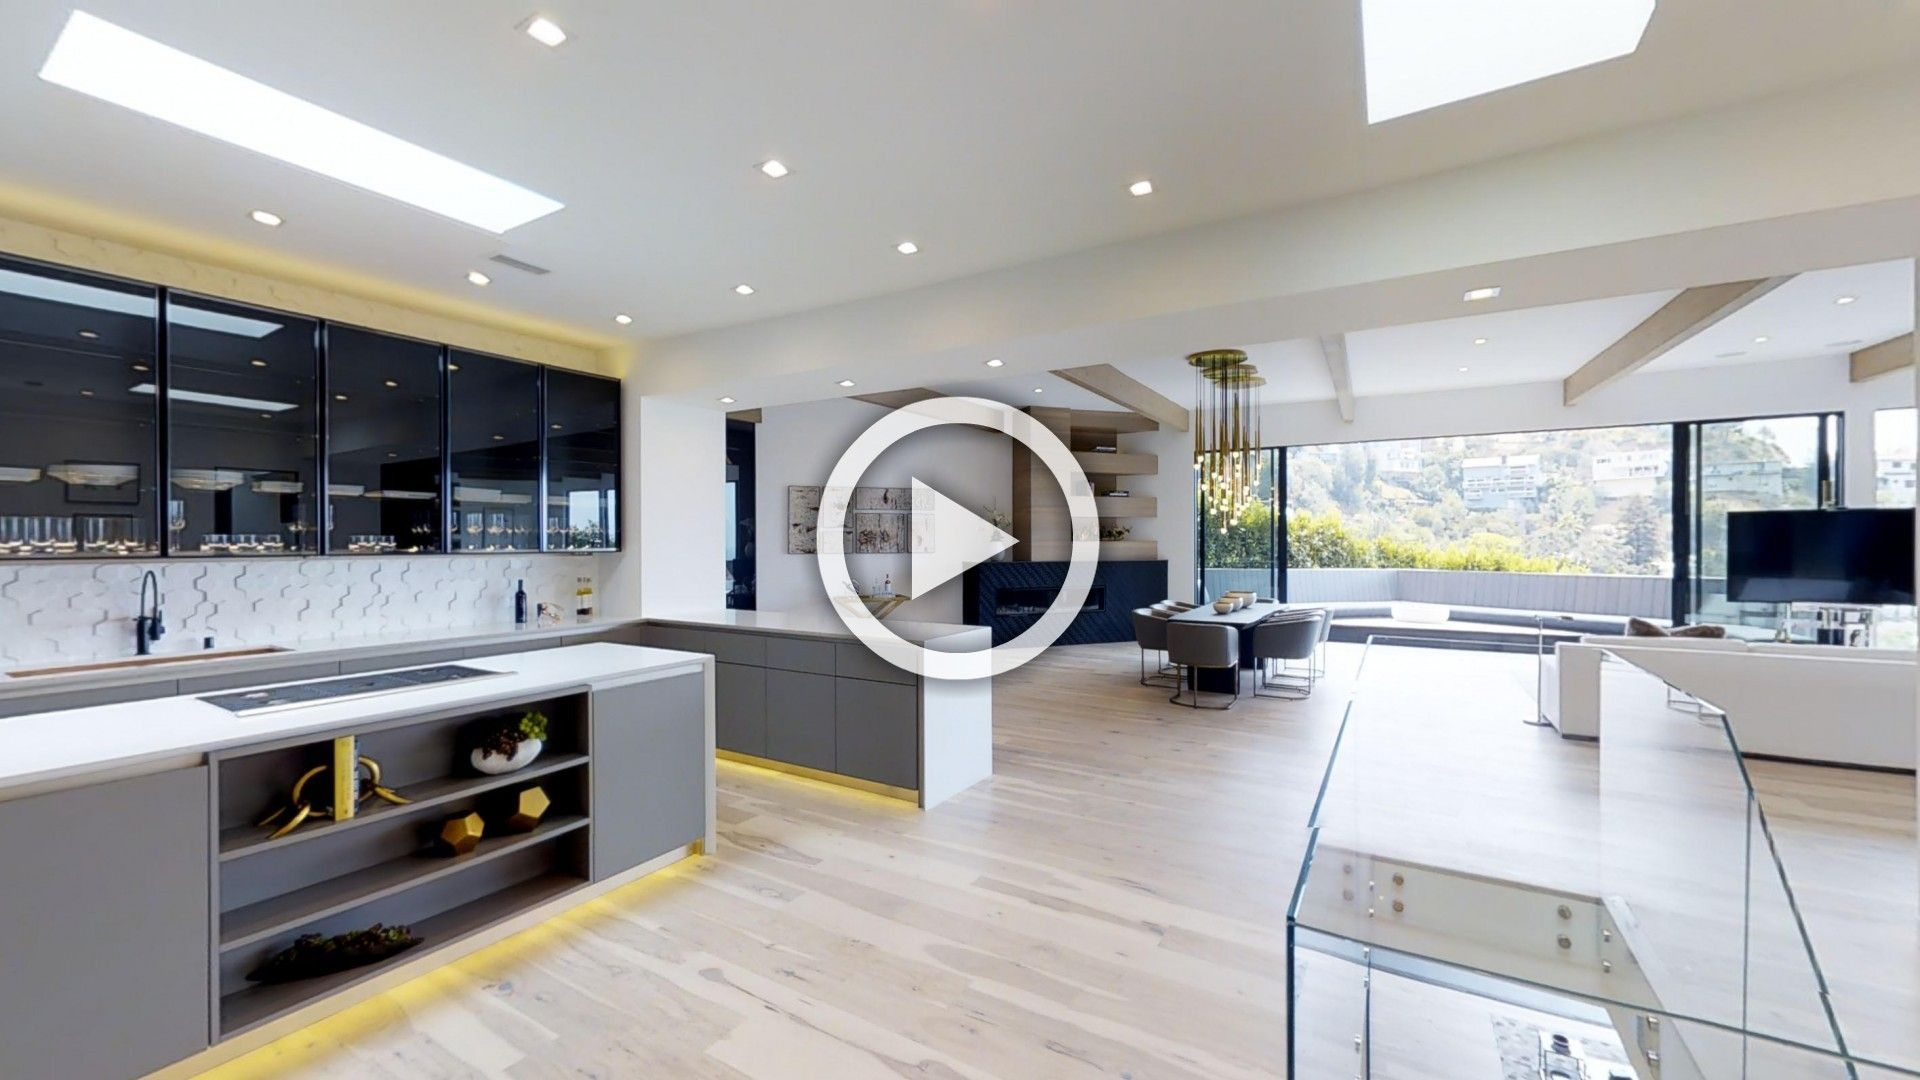 8842 Evanview Dr | West Hollywood | Los Angeles | Mantis3d